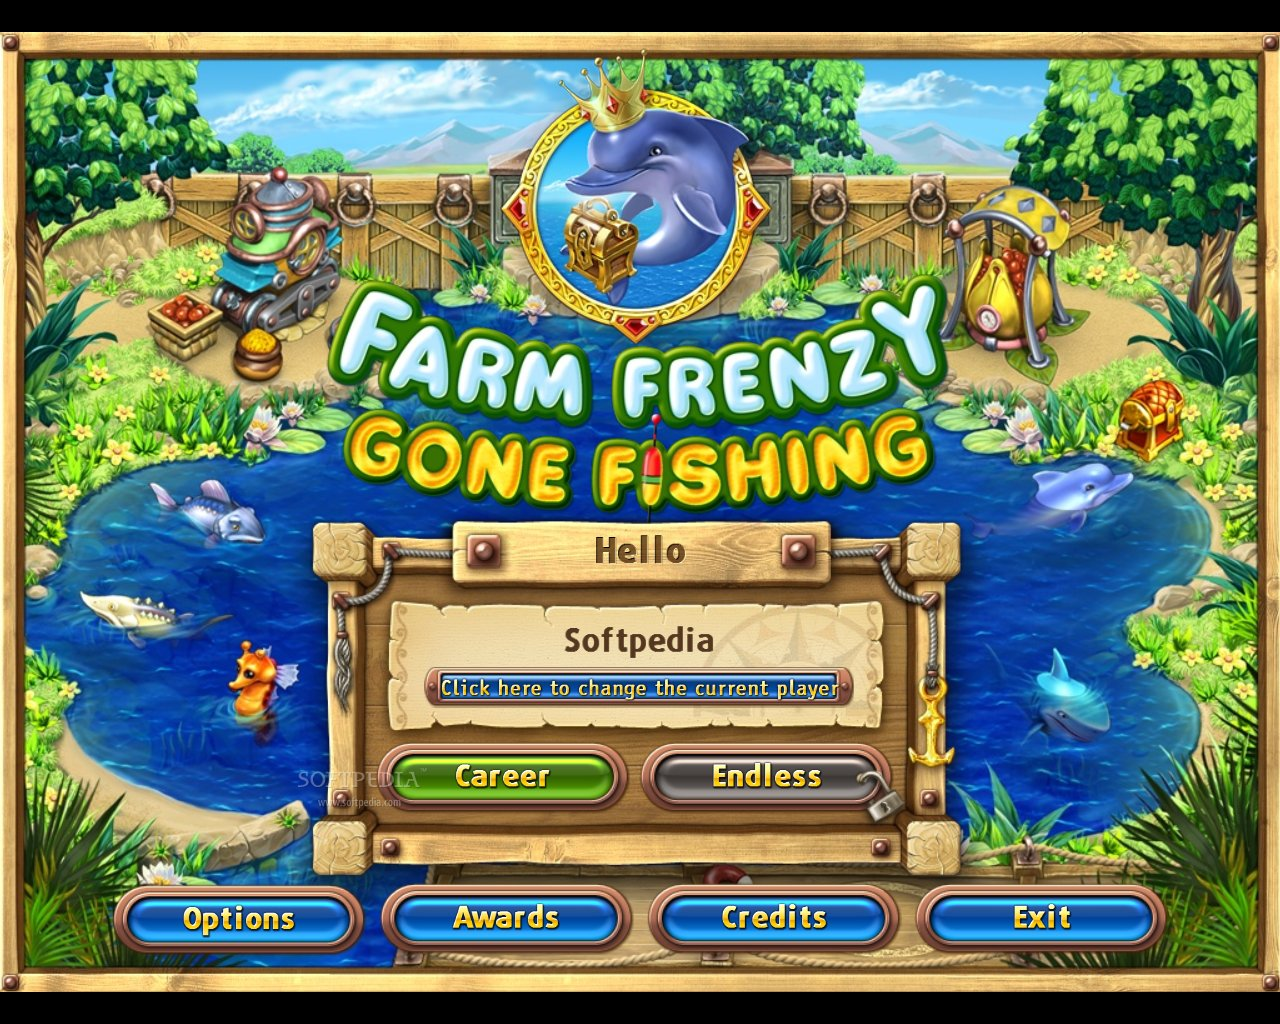 Farm frenzy gone fishing download for Gone fishing game